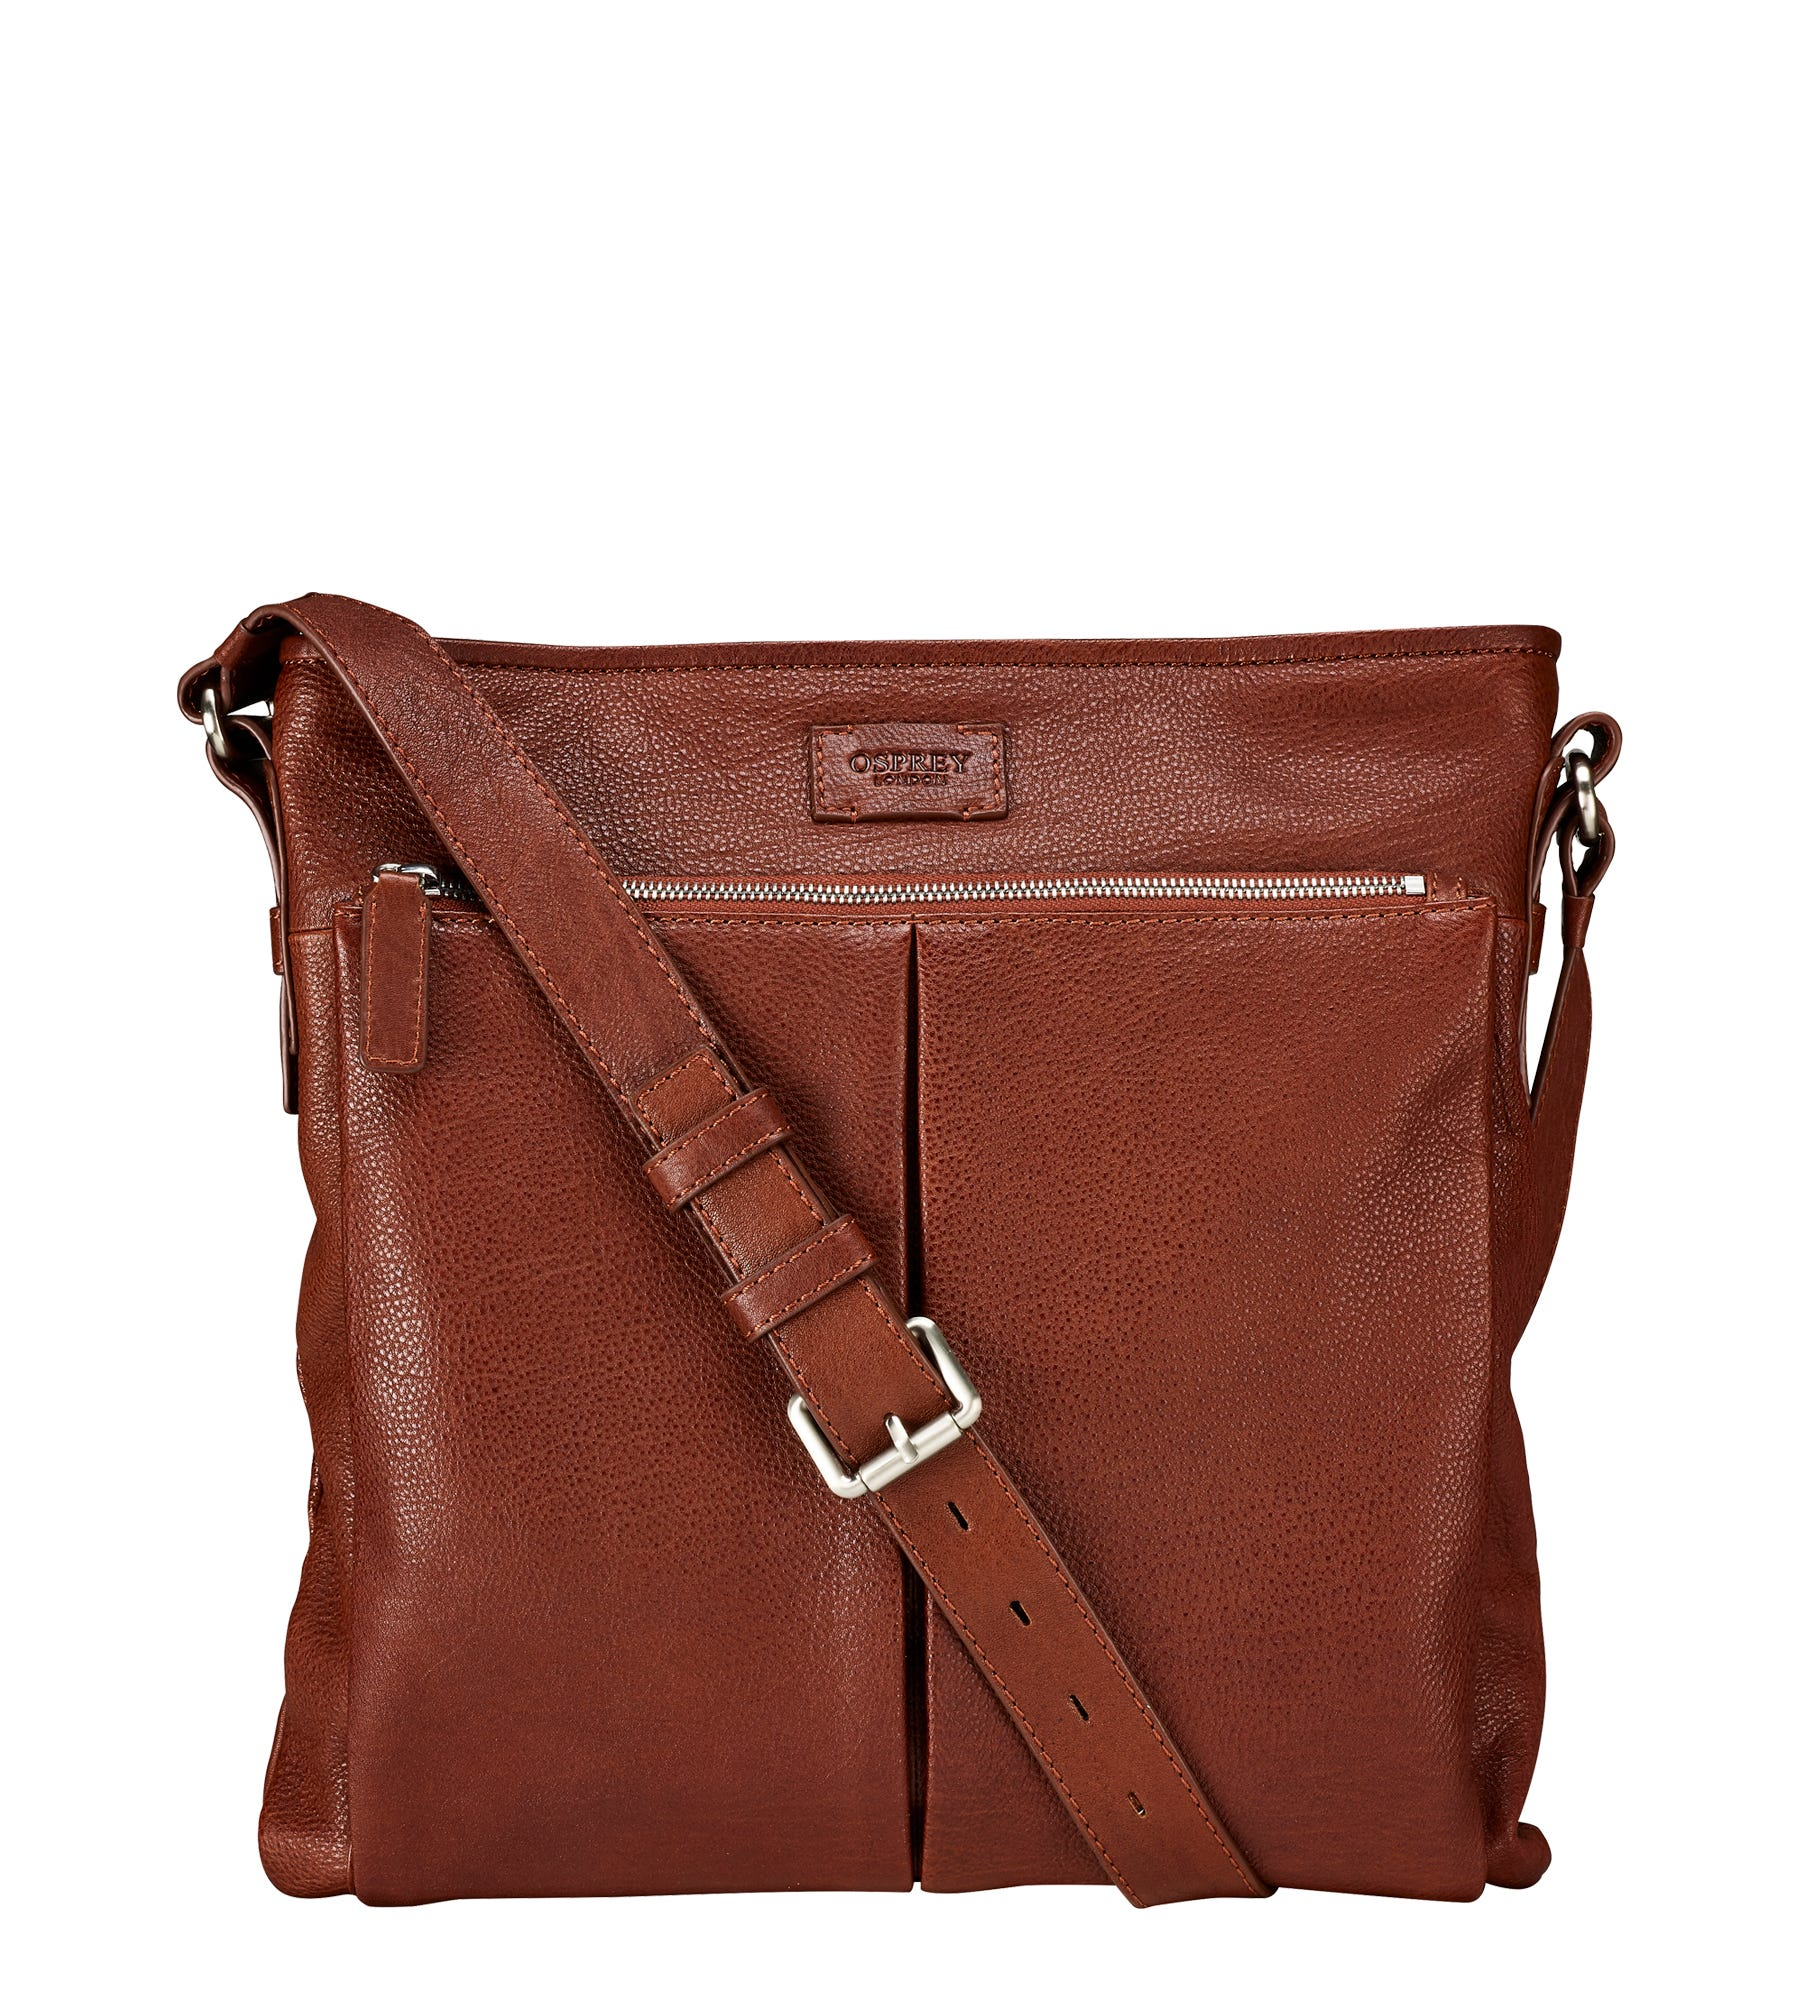 An image of The Watson Leather Business Messenger